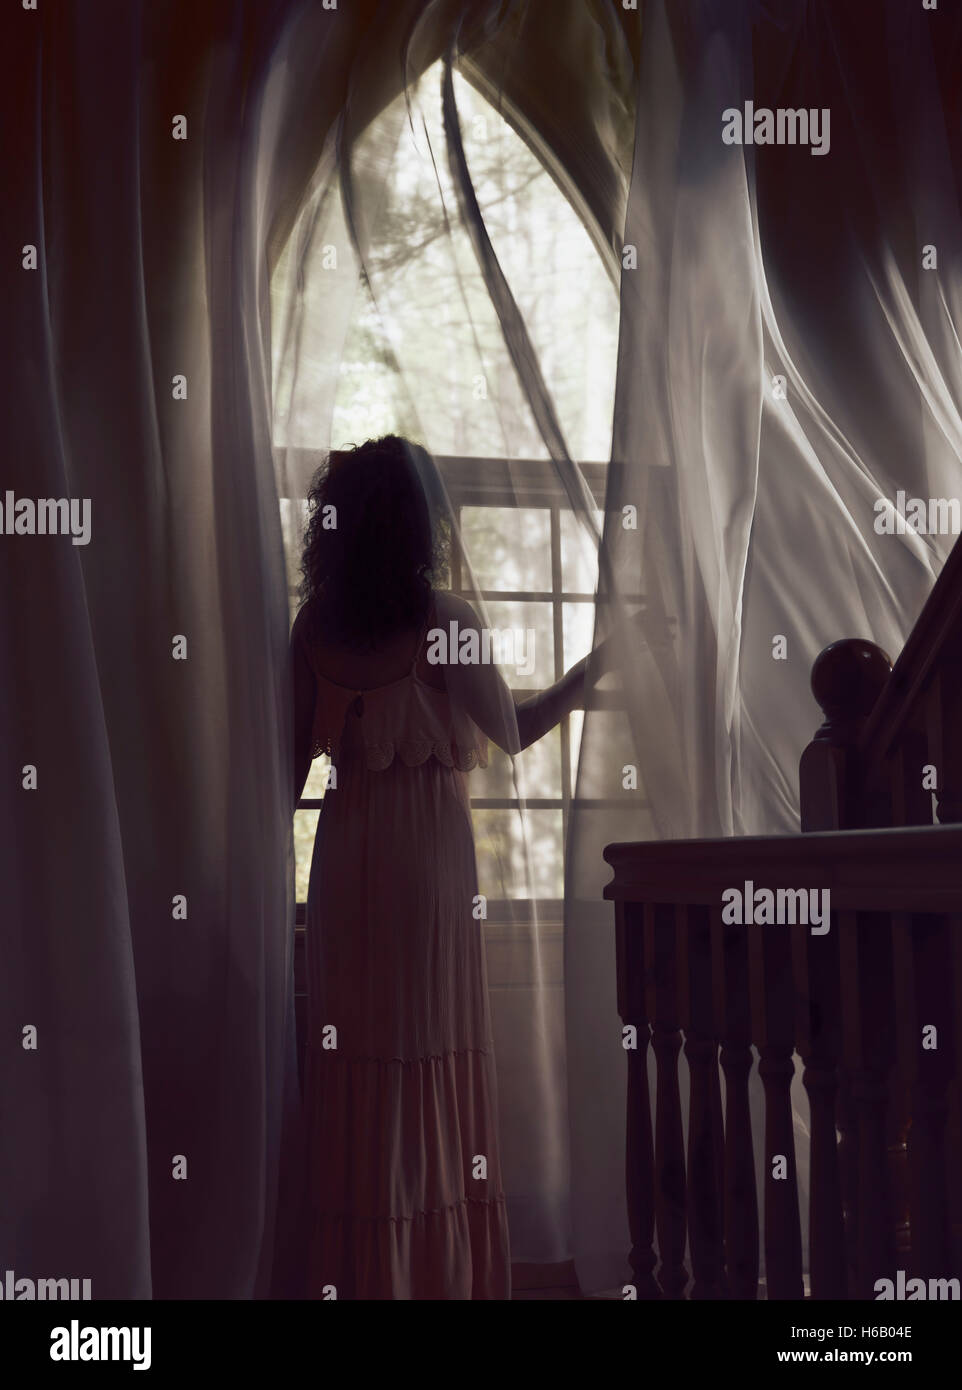 Woman in a long dress standing by a window with flying in the wind curtains in a dark house lit by dim sunlight - Stock Image